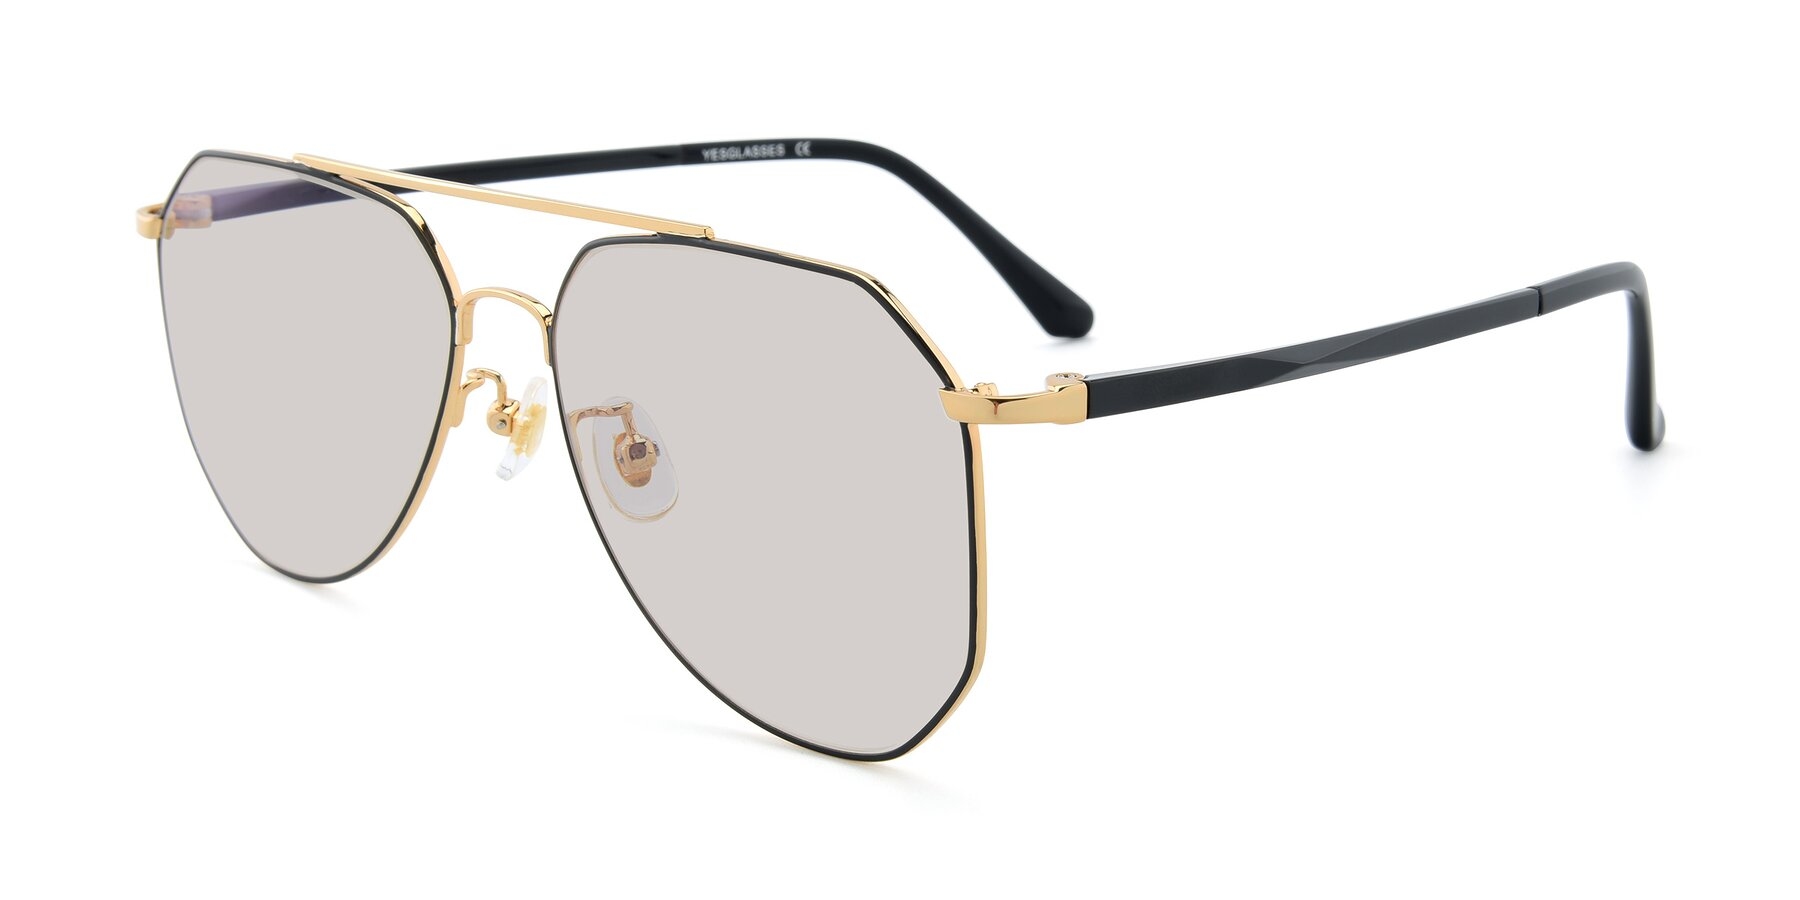 Angle of XC-8040 in Black/ Gold with Light Brown Tinted Lenses